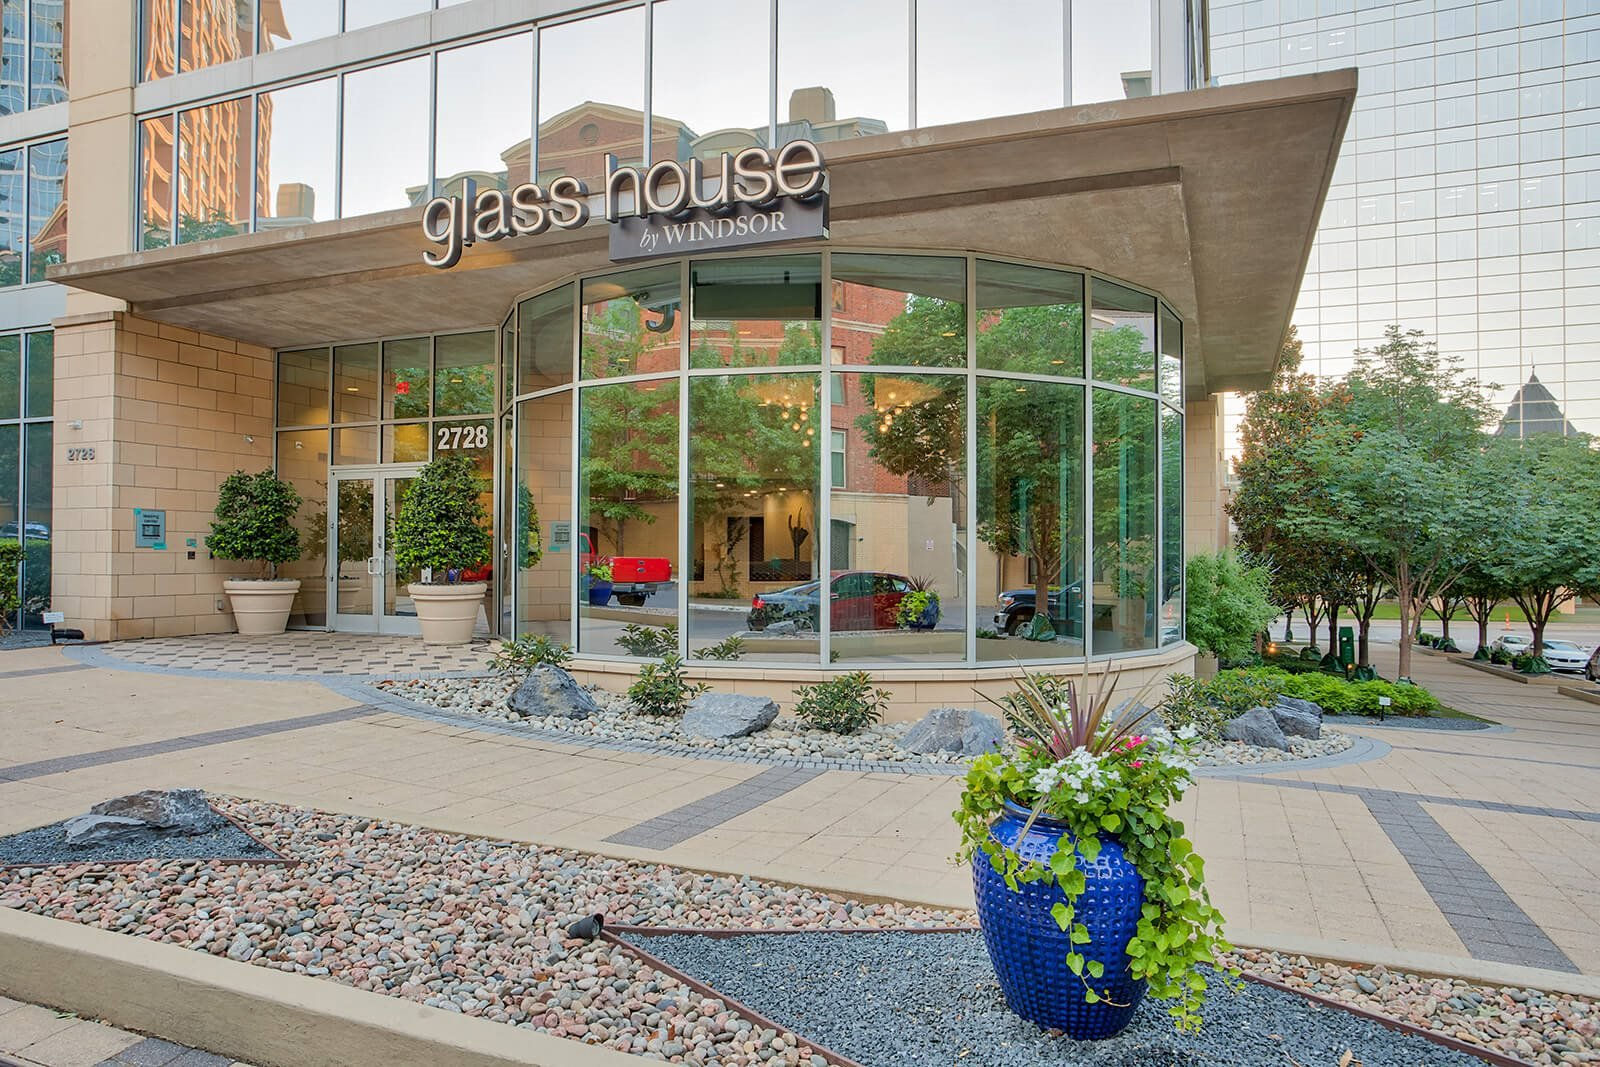 Professionally Managed Community at Glass House by Windsor, Dallas, Texas